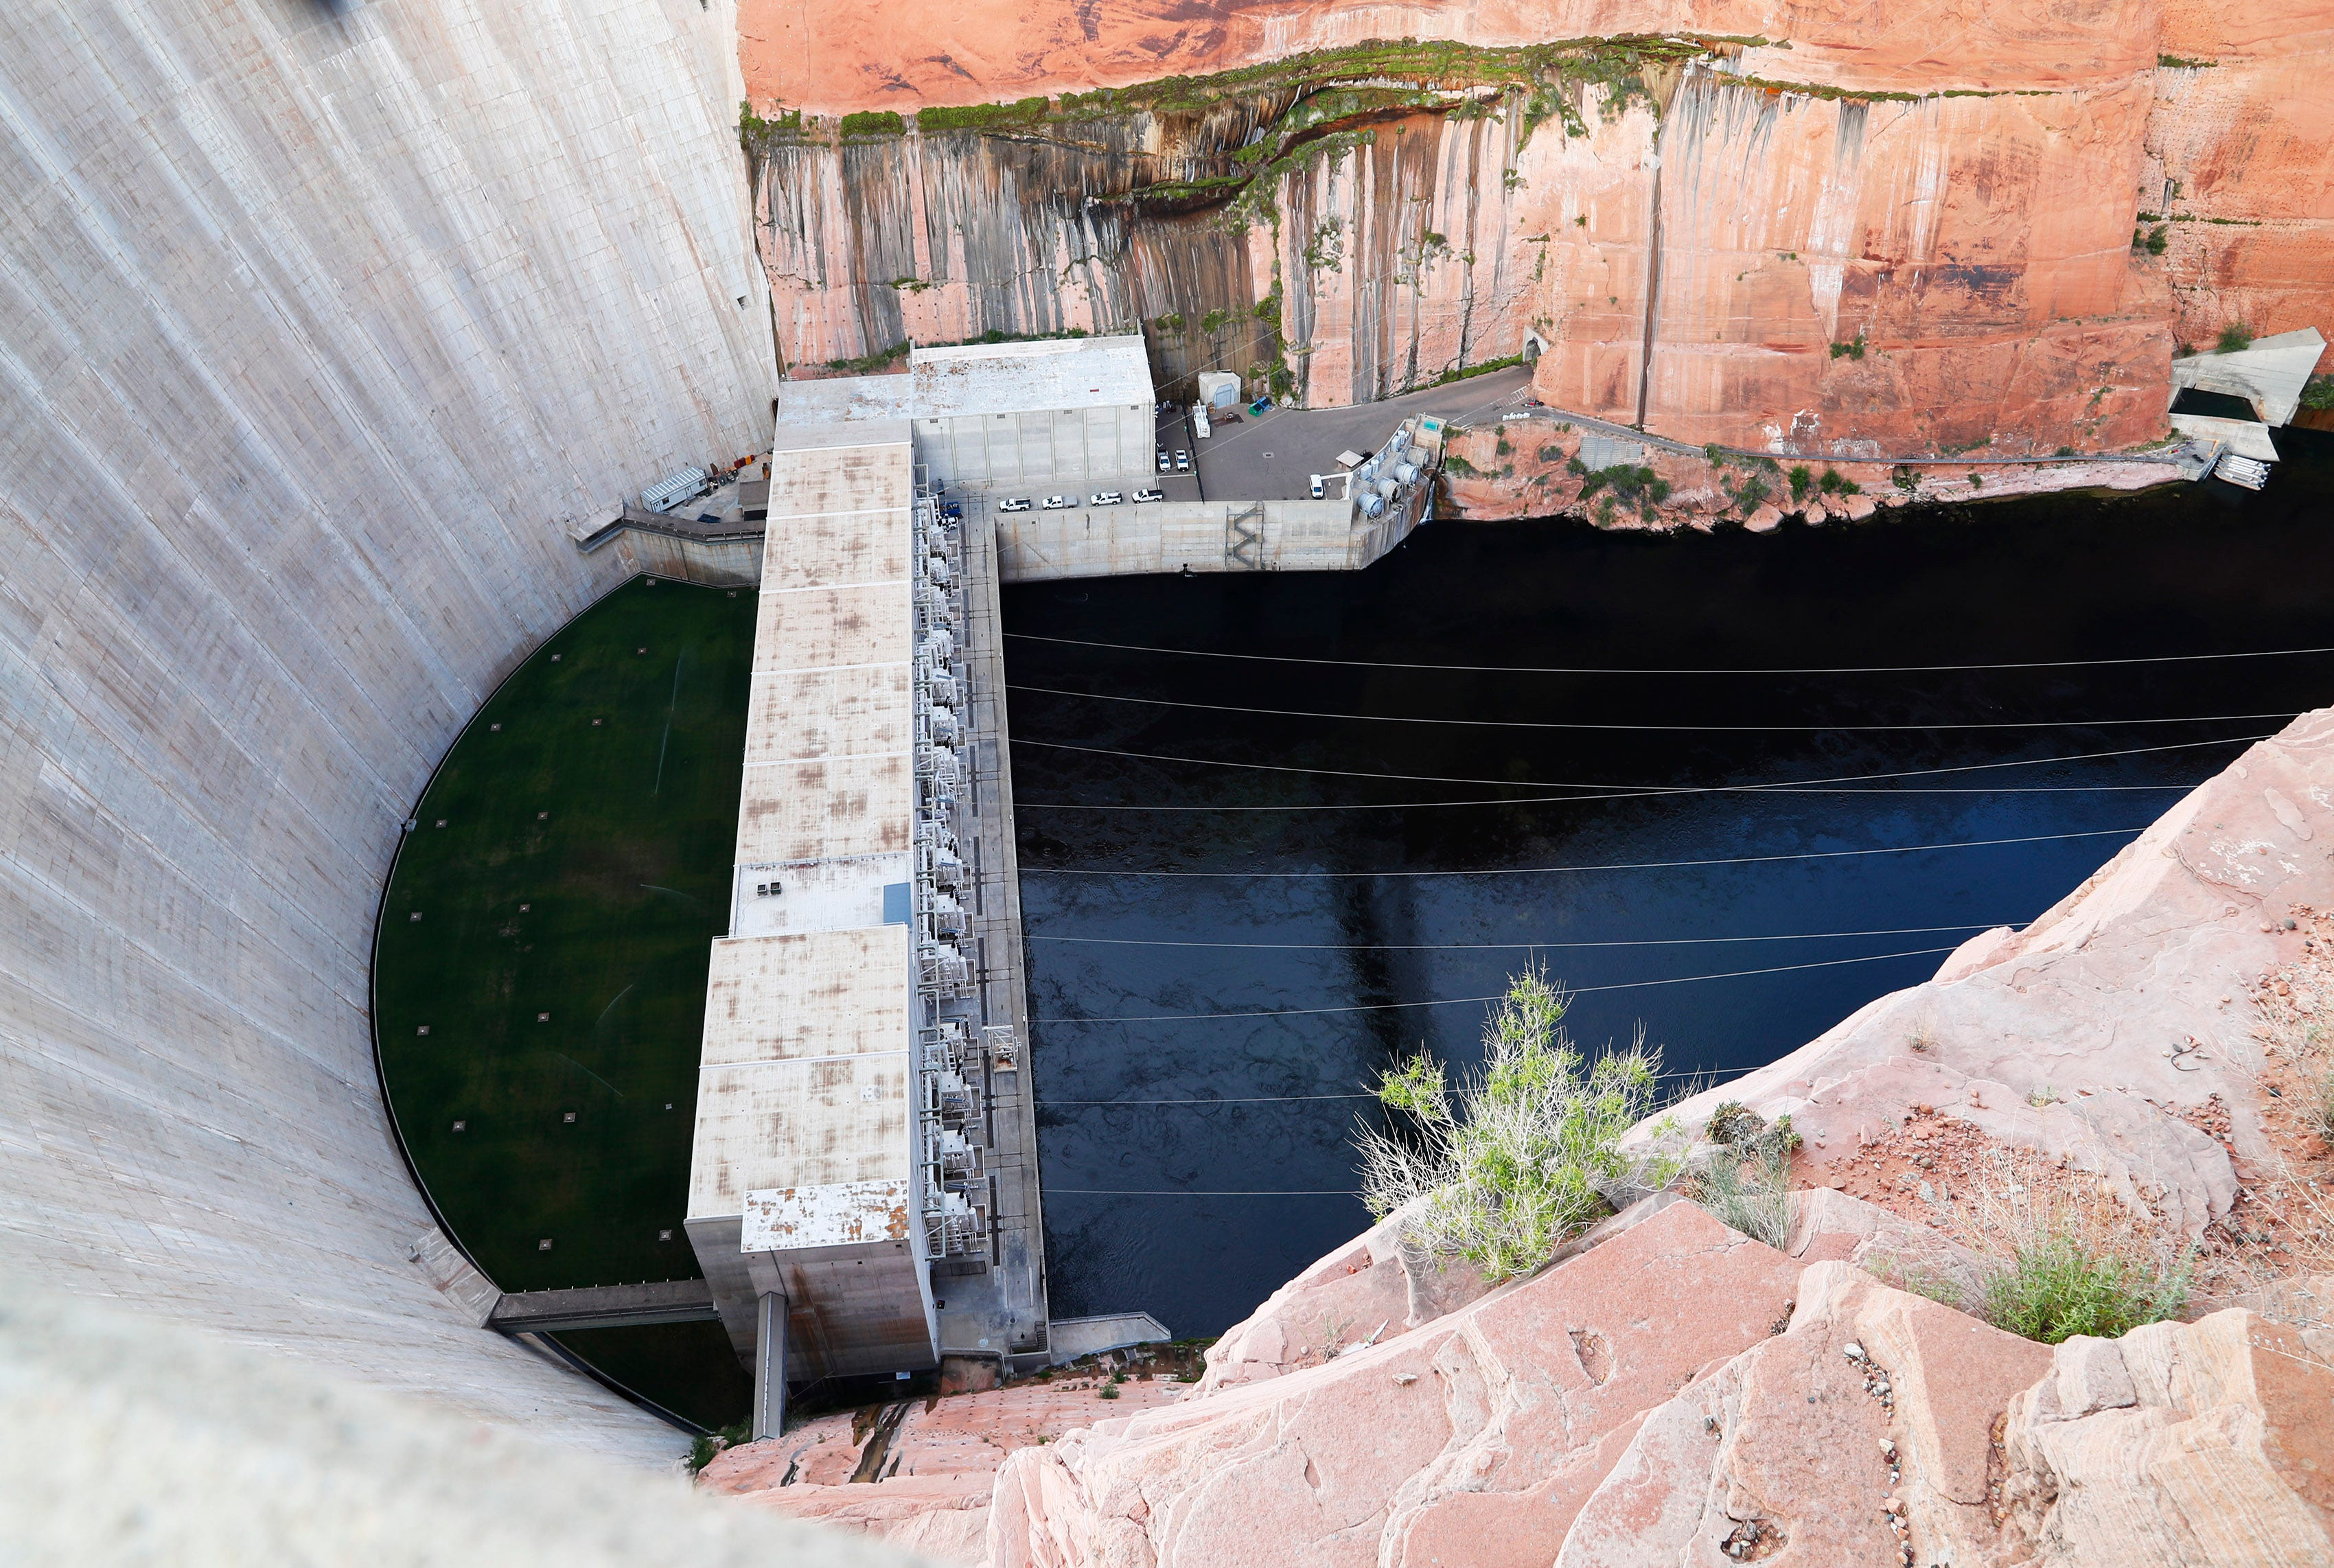 """Some environmentalists advocate a """"Fill Mead First"""" solution, leaving Glen Canyon Dam in place but largely draining Lake Powell and letting the water flow through Grand Canyon to prop up Lake Mead below. They believe this would reduce losses of standing water from seepage into Glen Canyon's sandstone, and that Lake Mead could handle the amount of water likely to be available in a regional climate that is increasingly drier and warmer than the dam's builders had expected."""